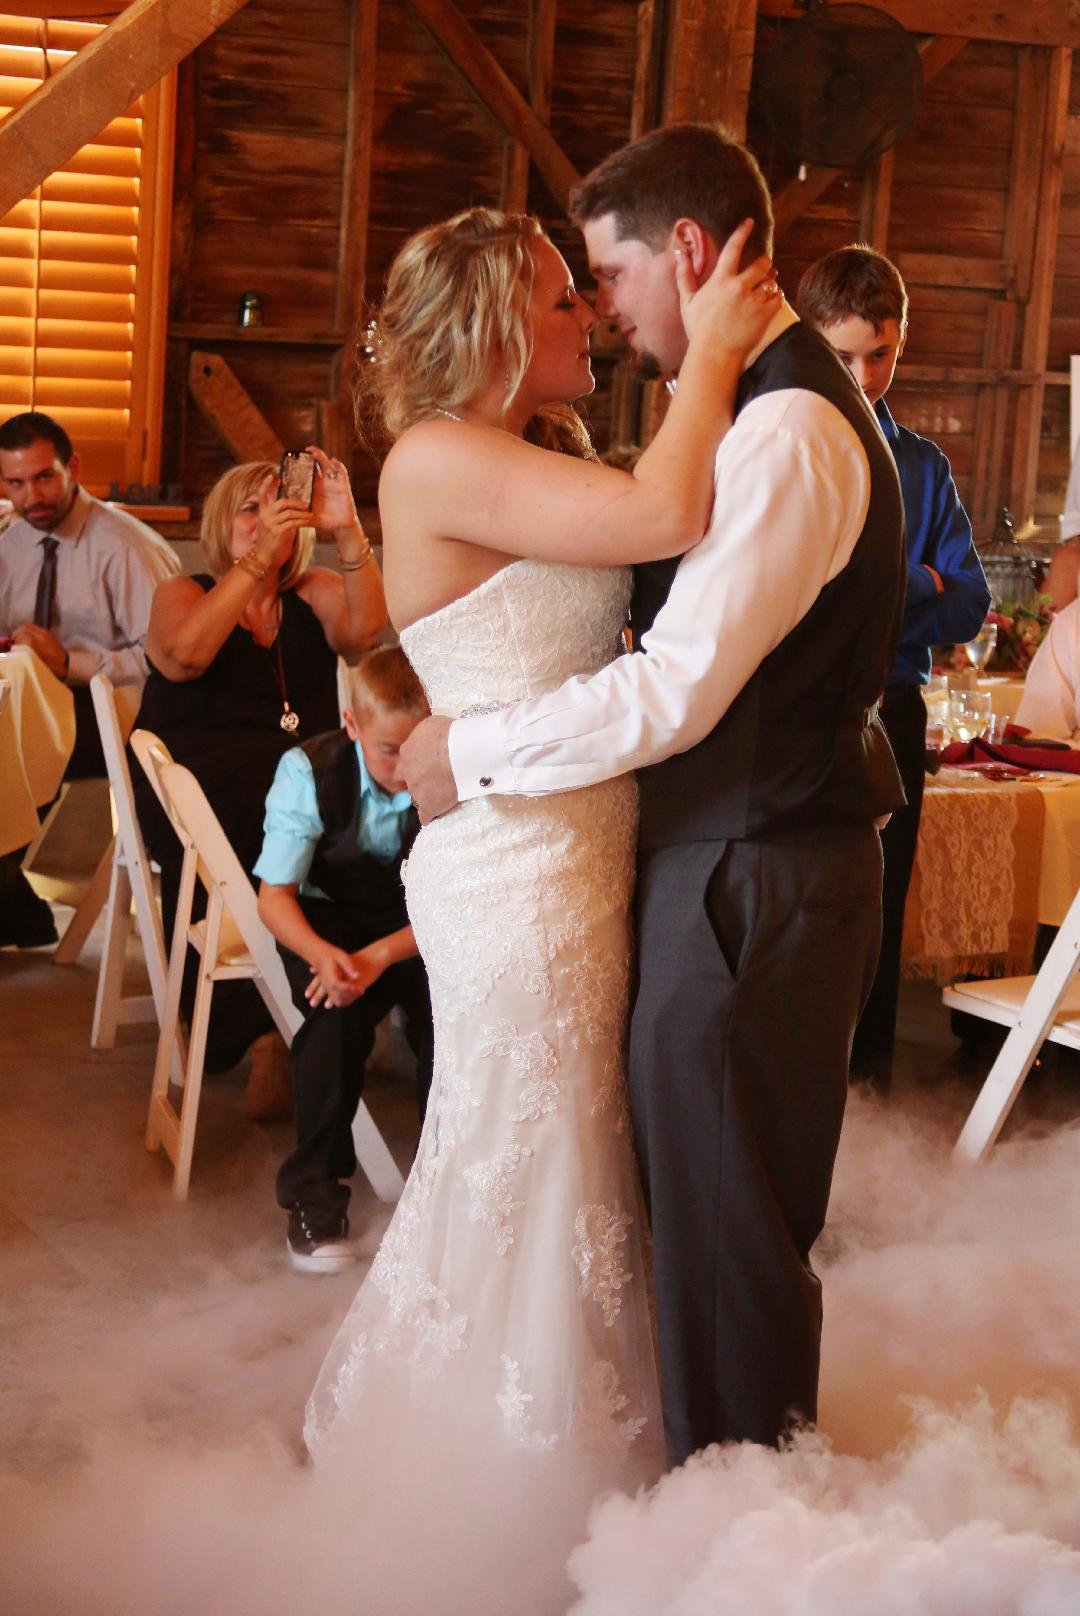 Dancing on the Clouds At Avon Wedding Barn an Exclusive offering from Music Life Line Wedding DJs